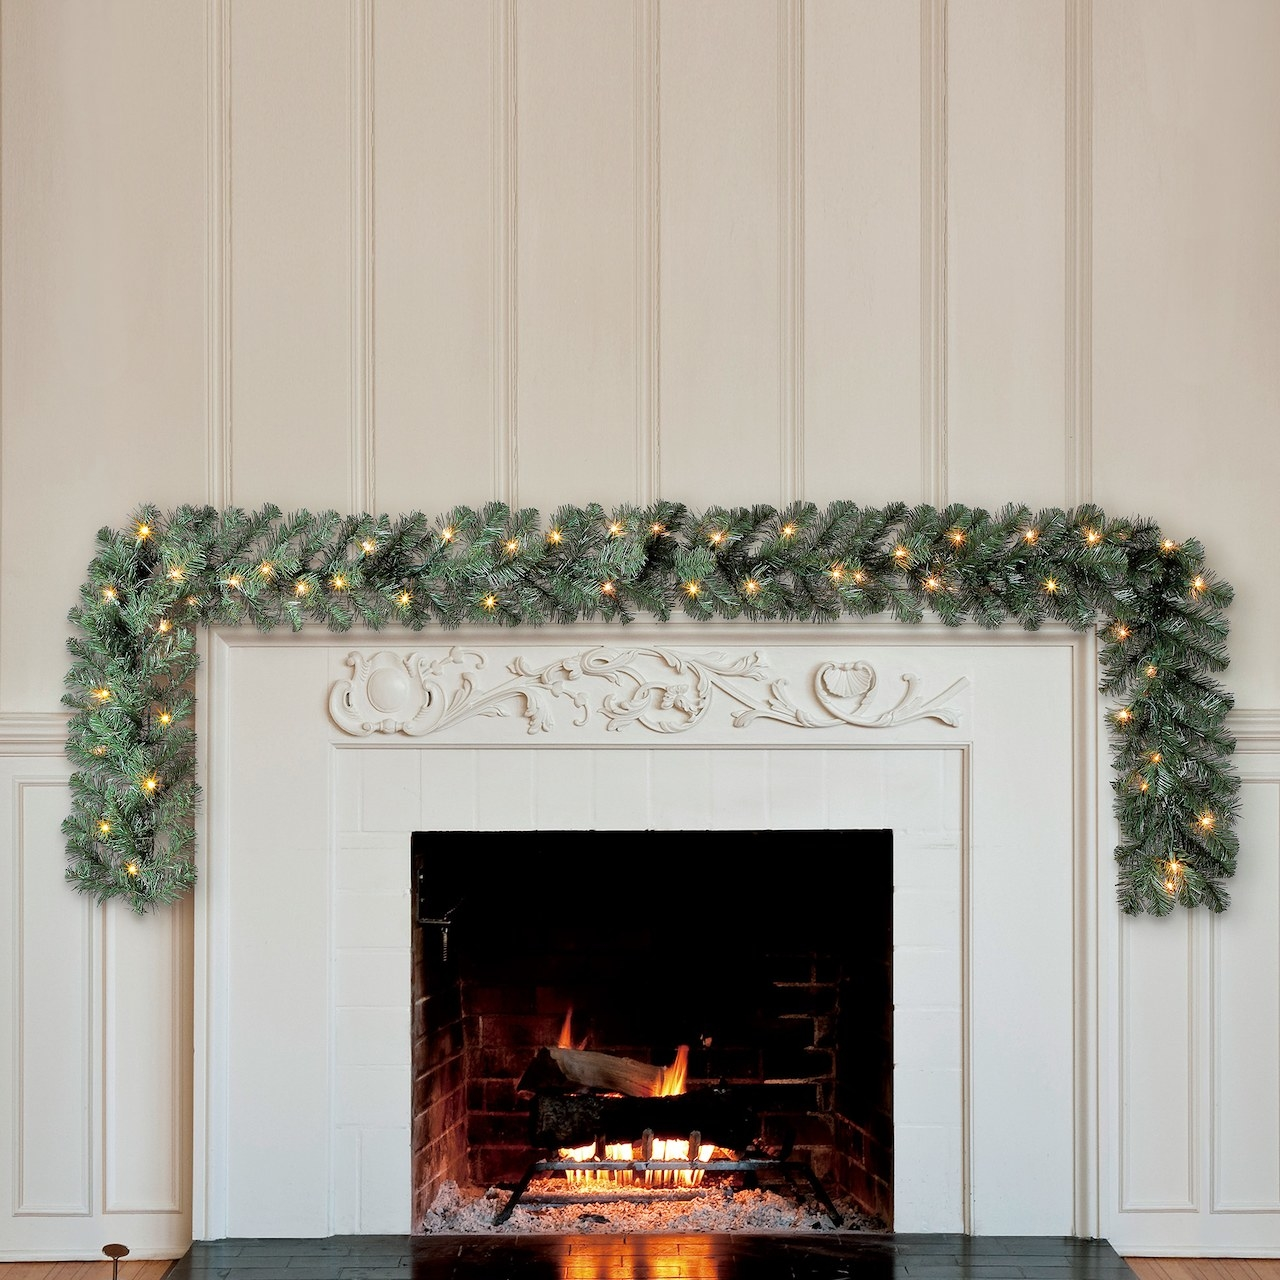 The garland decorating a mantle above a fireplace